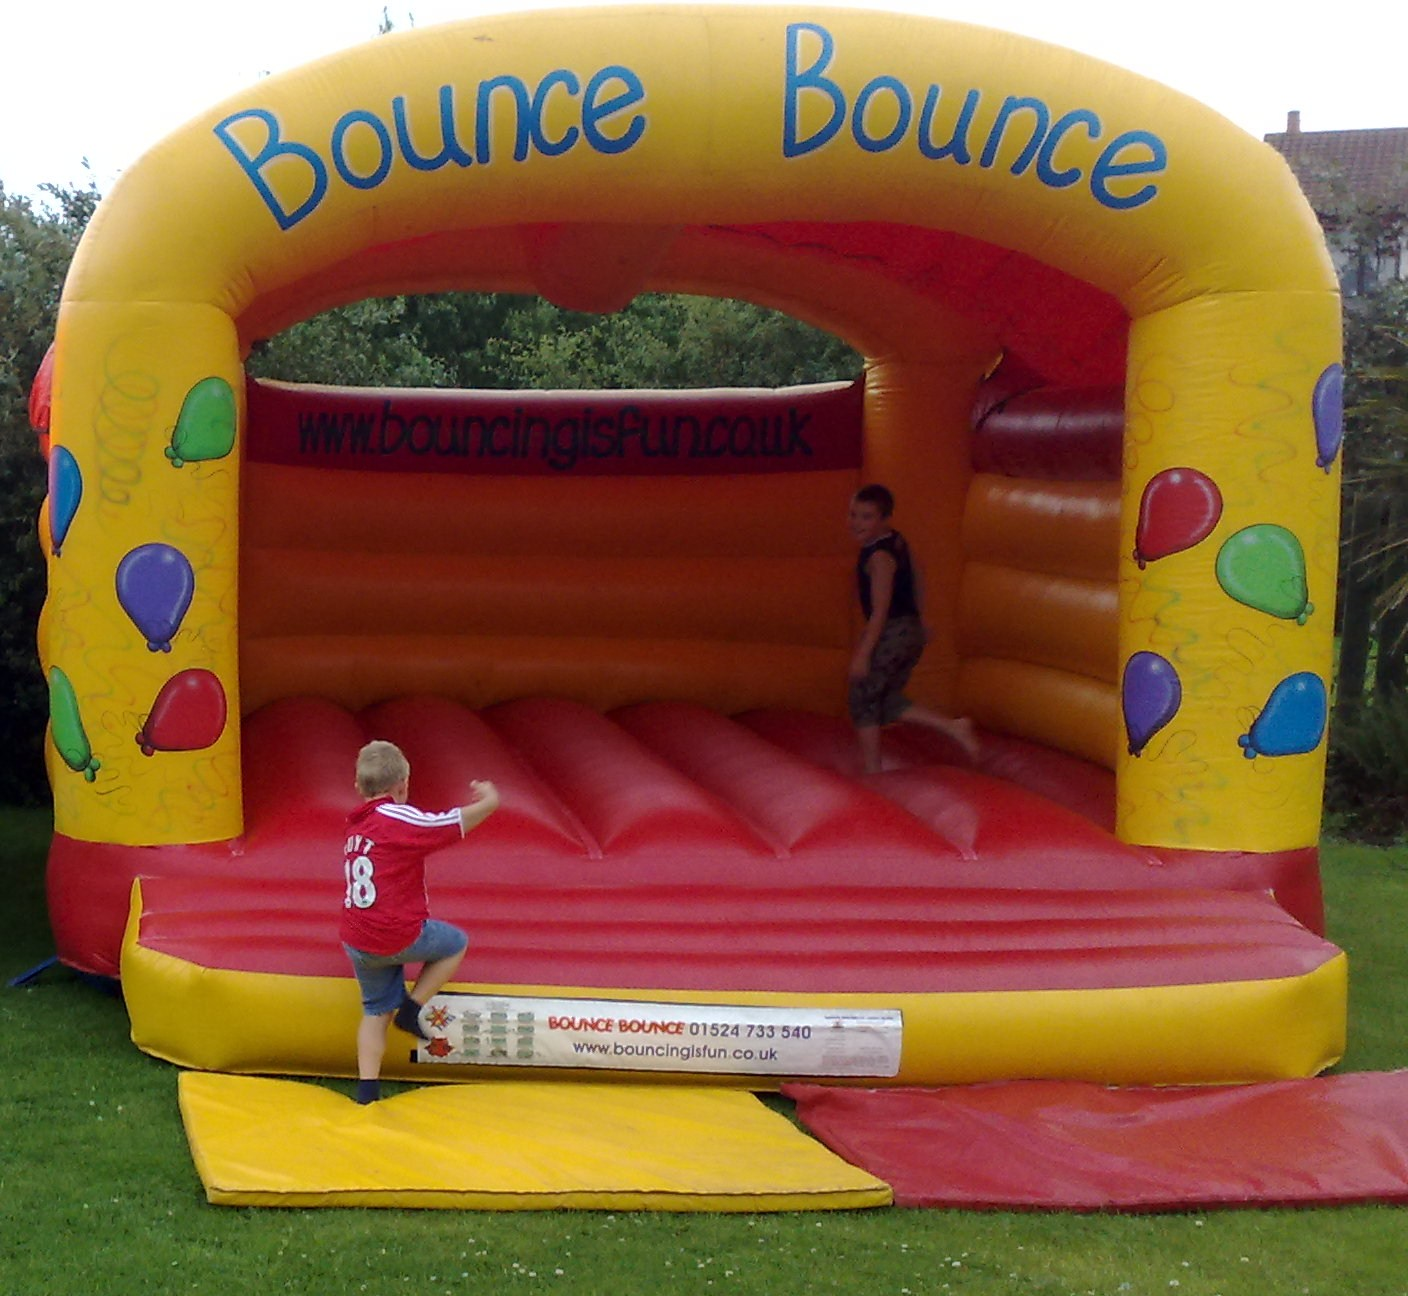 Bounce Bounce bouncy castles have a range of inflatables to hire. We have adult castles, Children's castles and Giant garden games.Bouncy castle hire Lancashire, Bouncy castle hire cumbria, Bouncy castle hire north Yorkshire, Bouncy castle hire lancaster, Bouncy castle hire carnforth, Bouncy castle hire Kendal, Bouncy castle hire Windemere, Bouncy castle hire ulverston, Bouncy castle hire kirby lonsdale, Cumbria  bouncy castels, lancashire  bouncy castels, North yorkshire  bouncy castels, lancaster bouncy castels, carnforth  bouncy castels, kendal bouncy castels, windemere bouncy castels, ulverston bouncy castels, kirby lonsdale bouncy castels, castle Hire cumbria, castle Hire lancashire, castle Hire northyorkshire, castle Hire lancaster, castle Hire carnforth, castle Hire kendal, castle Hire windemere, castle Hire ulverston, castle Hire kirby lonsdale, inflatable hire cumbria, inflatable hire lancashire, inflatable hire northyorkshire, inflatable hire lancaster, inflatable hire carnforth, inflatable hire kendal, inflatable hire windemere, inflatable hire ulverston, inflatable hire kirby lonsdale, bounce bounce bouncy castles, Bouncy castle hire, bounce bounce, bouncy castles, childrens entertainment, inflateable hire,